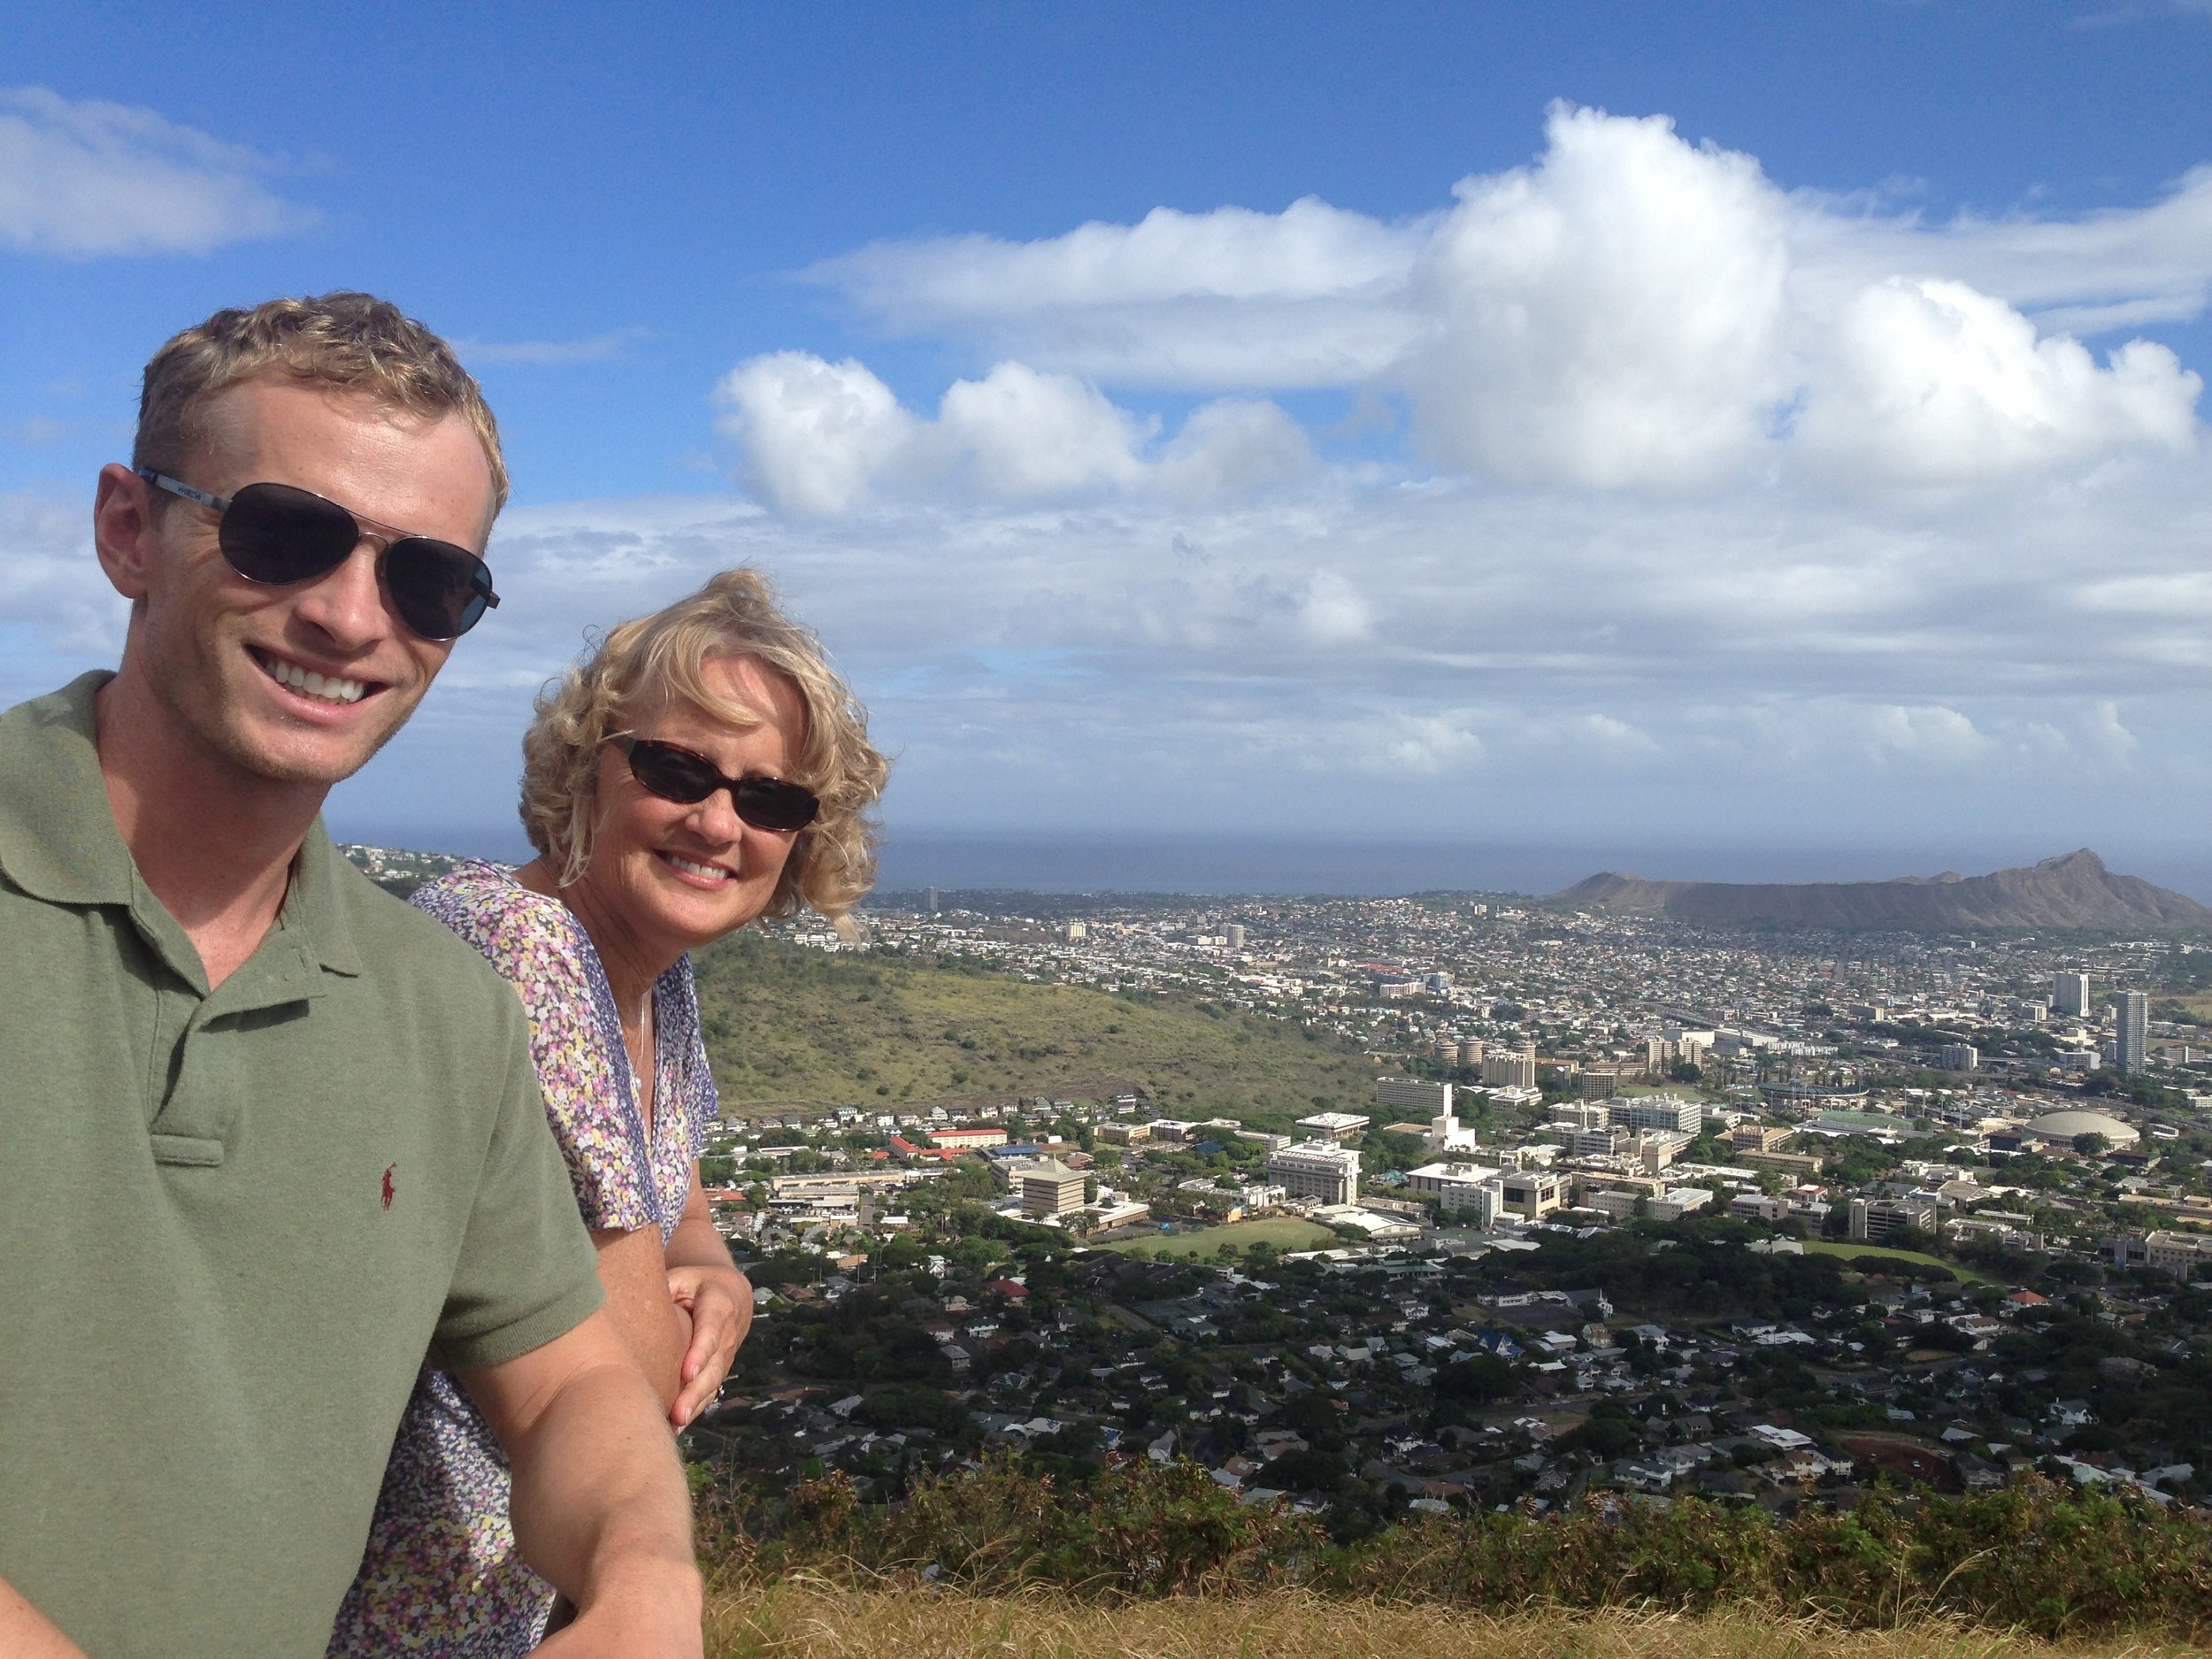 Jonathan and Susanne taking in the view of Diamond Head in Oahu, Hawaii, August 2013.